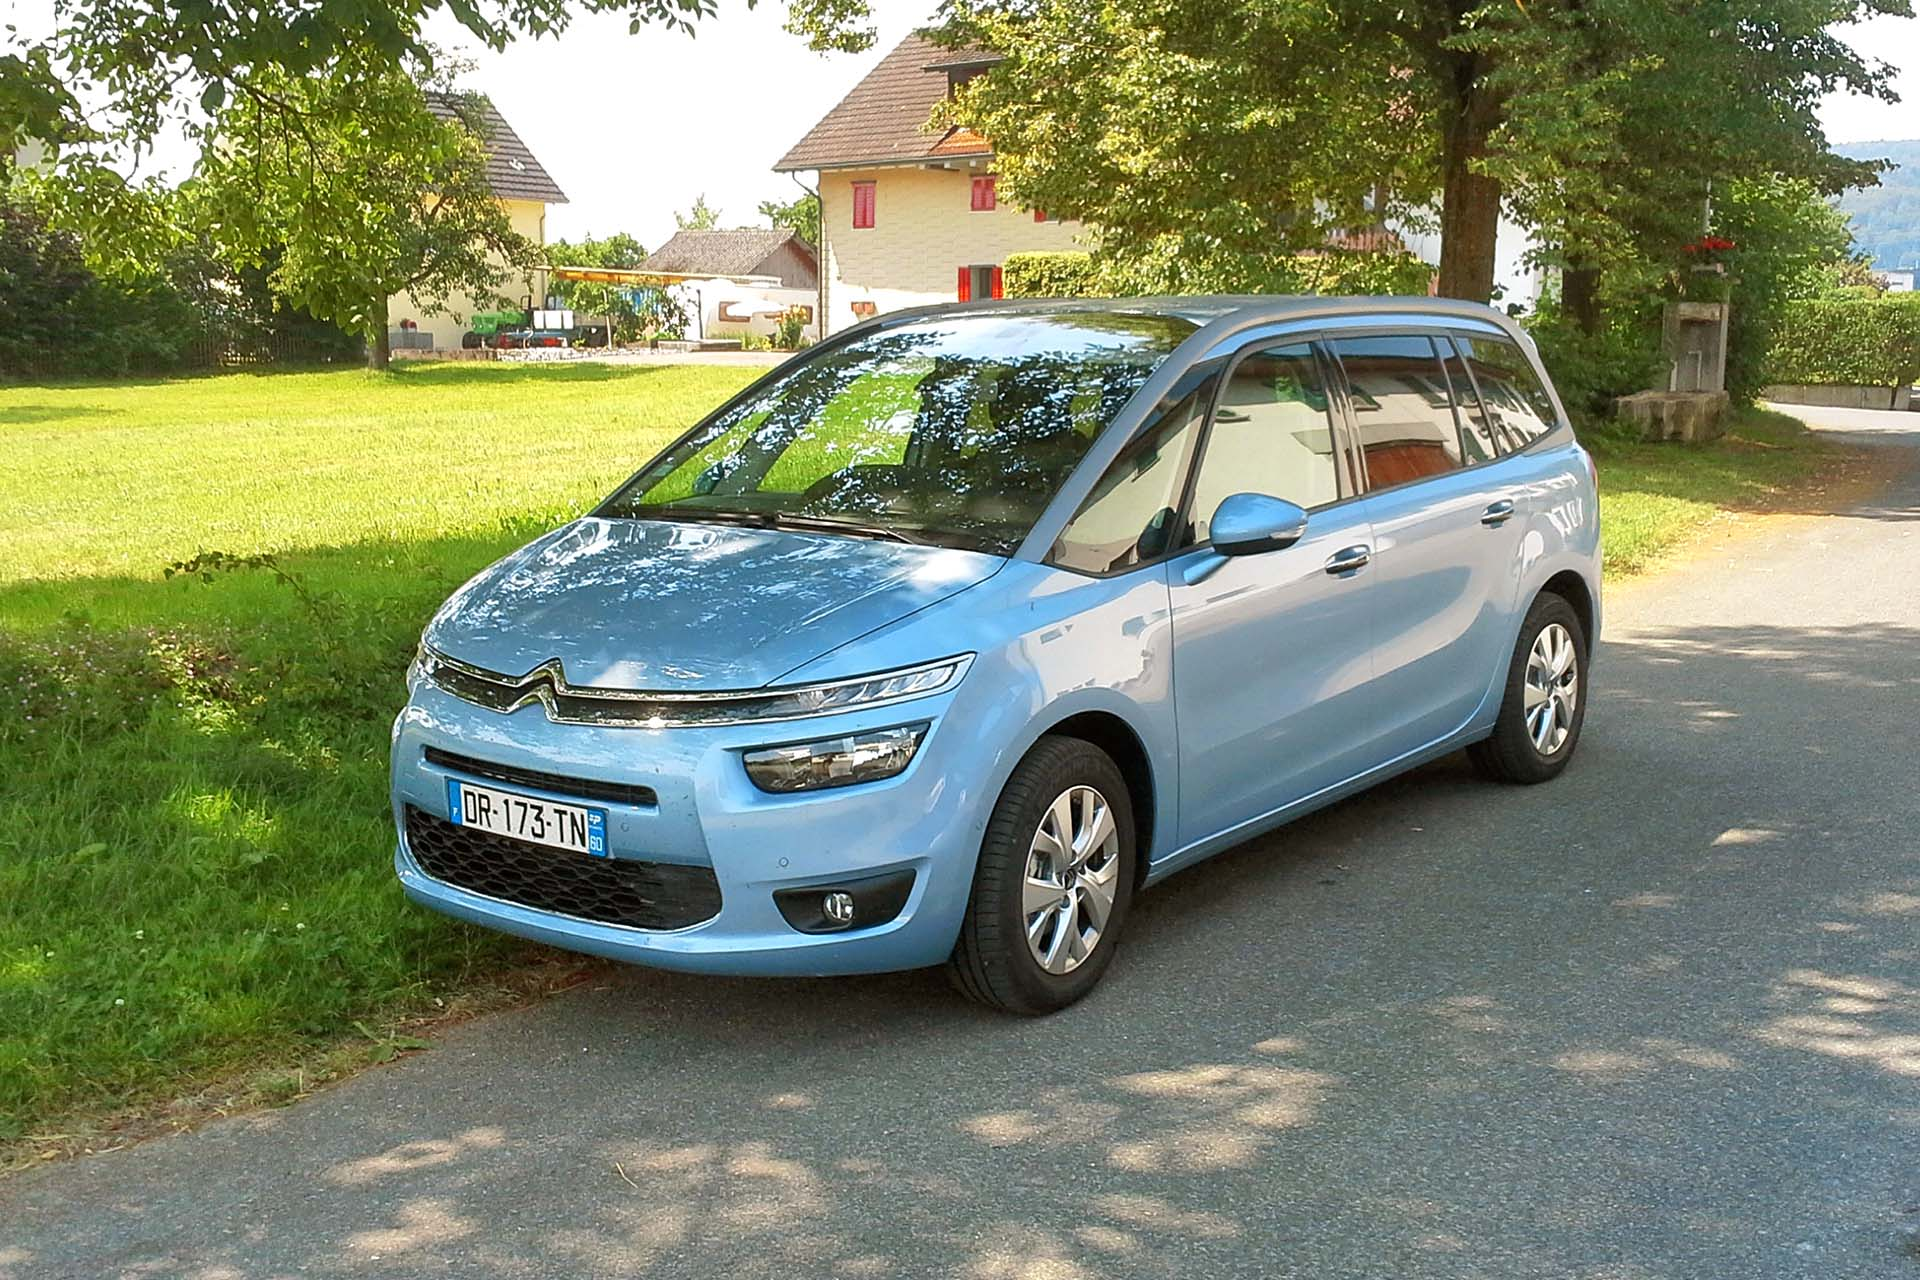 unobtainium road trip 2015 citroen grand c4 picasso. Black Bedroom Furniture Sets. Home Design Ideas